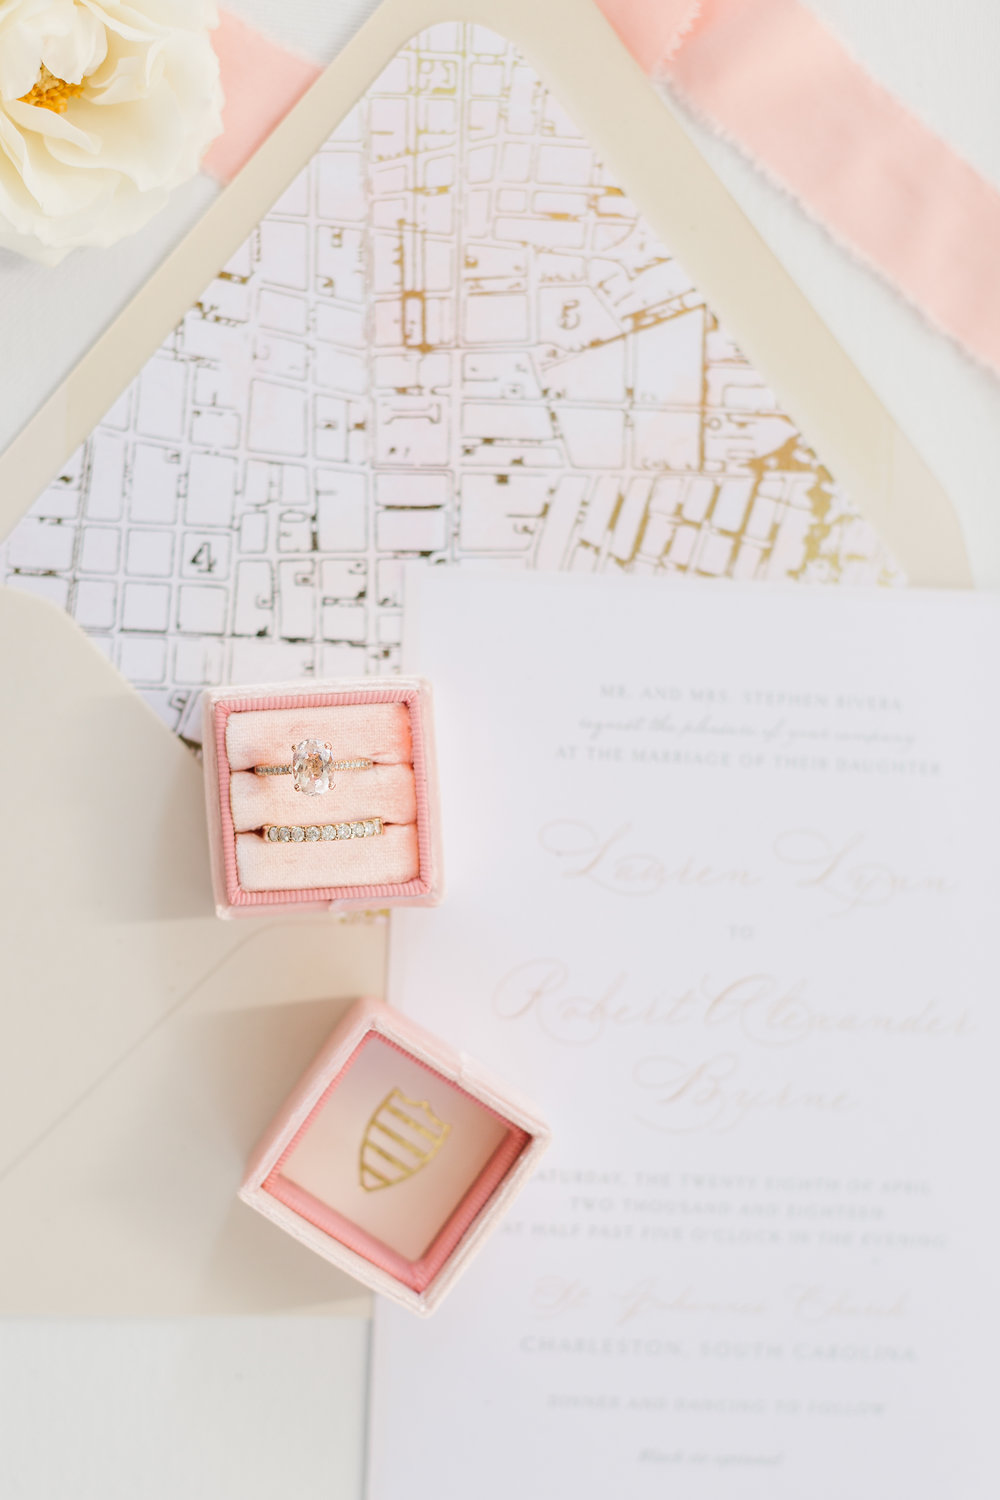 charleston-wedding-invitations-third-clover-paper-lauren-myers-photography.jpg